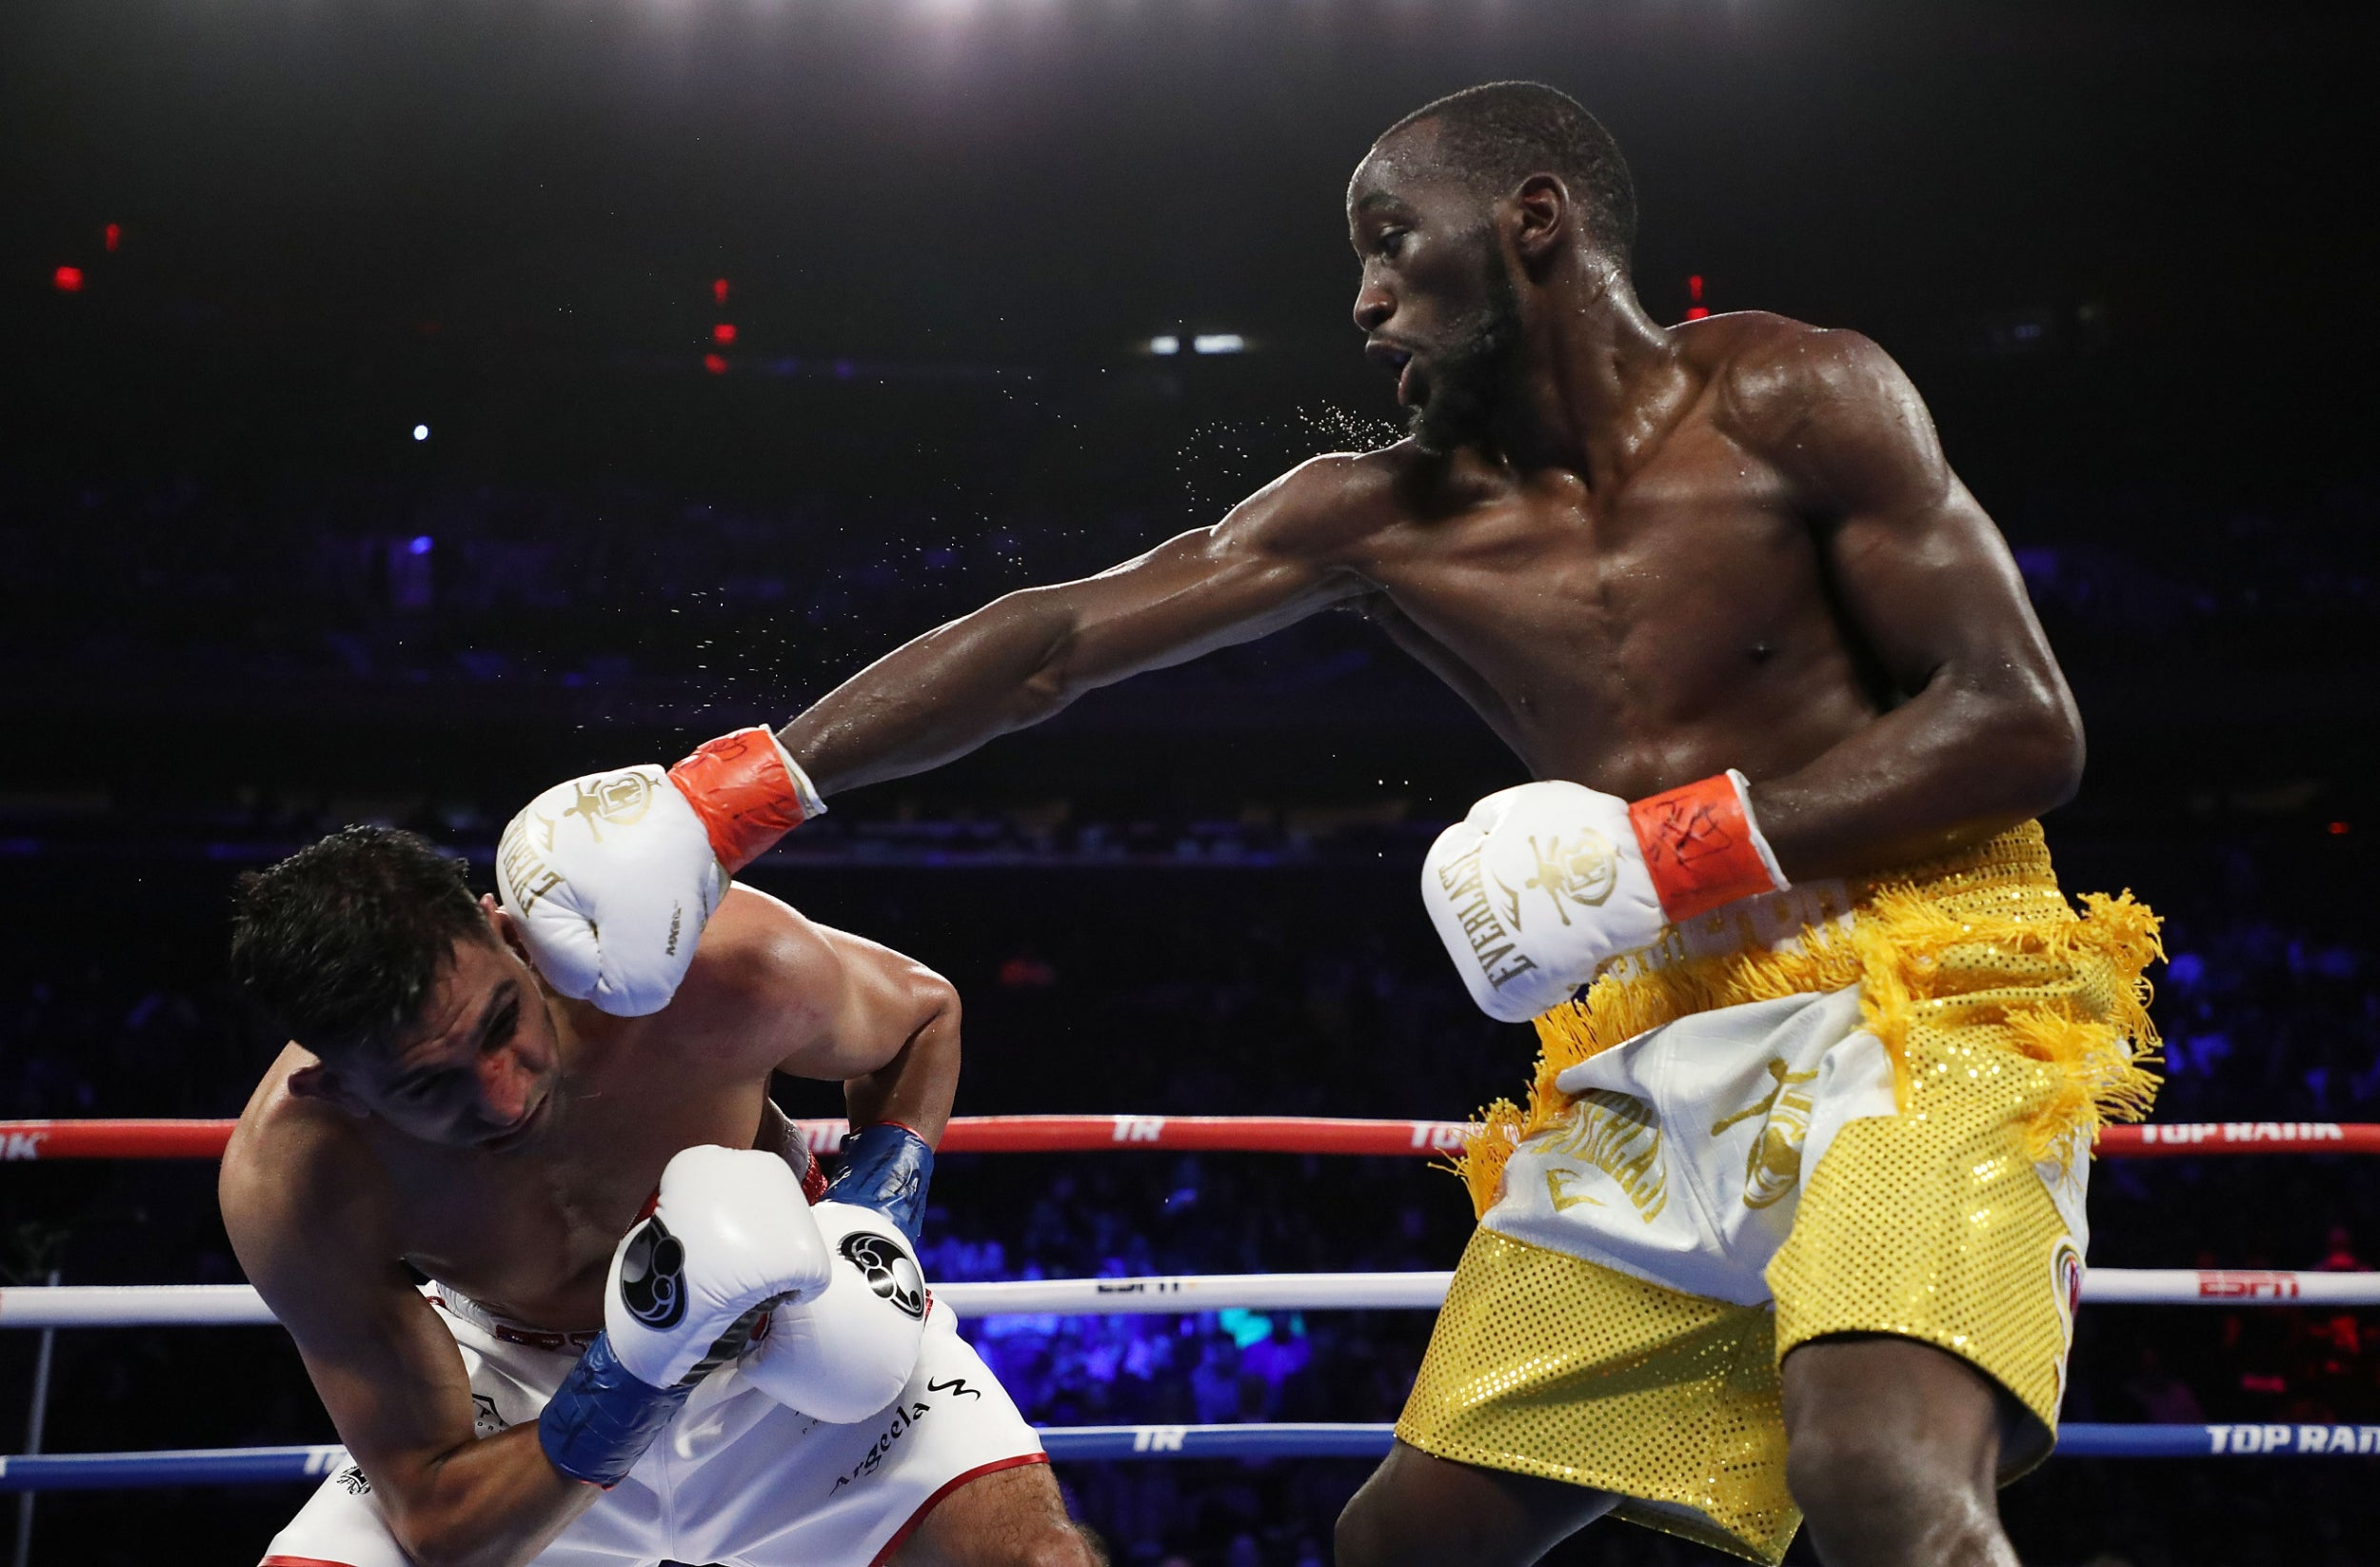 Amir Khan vs Terence Crawford result: Fight ends in controversial